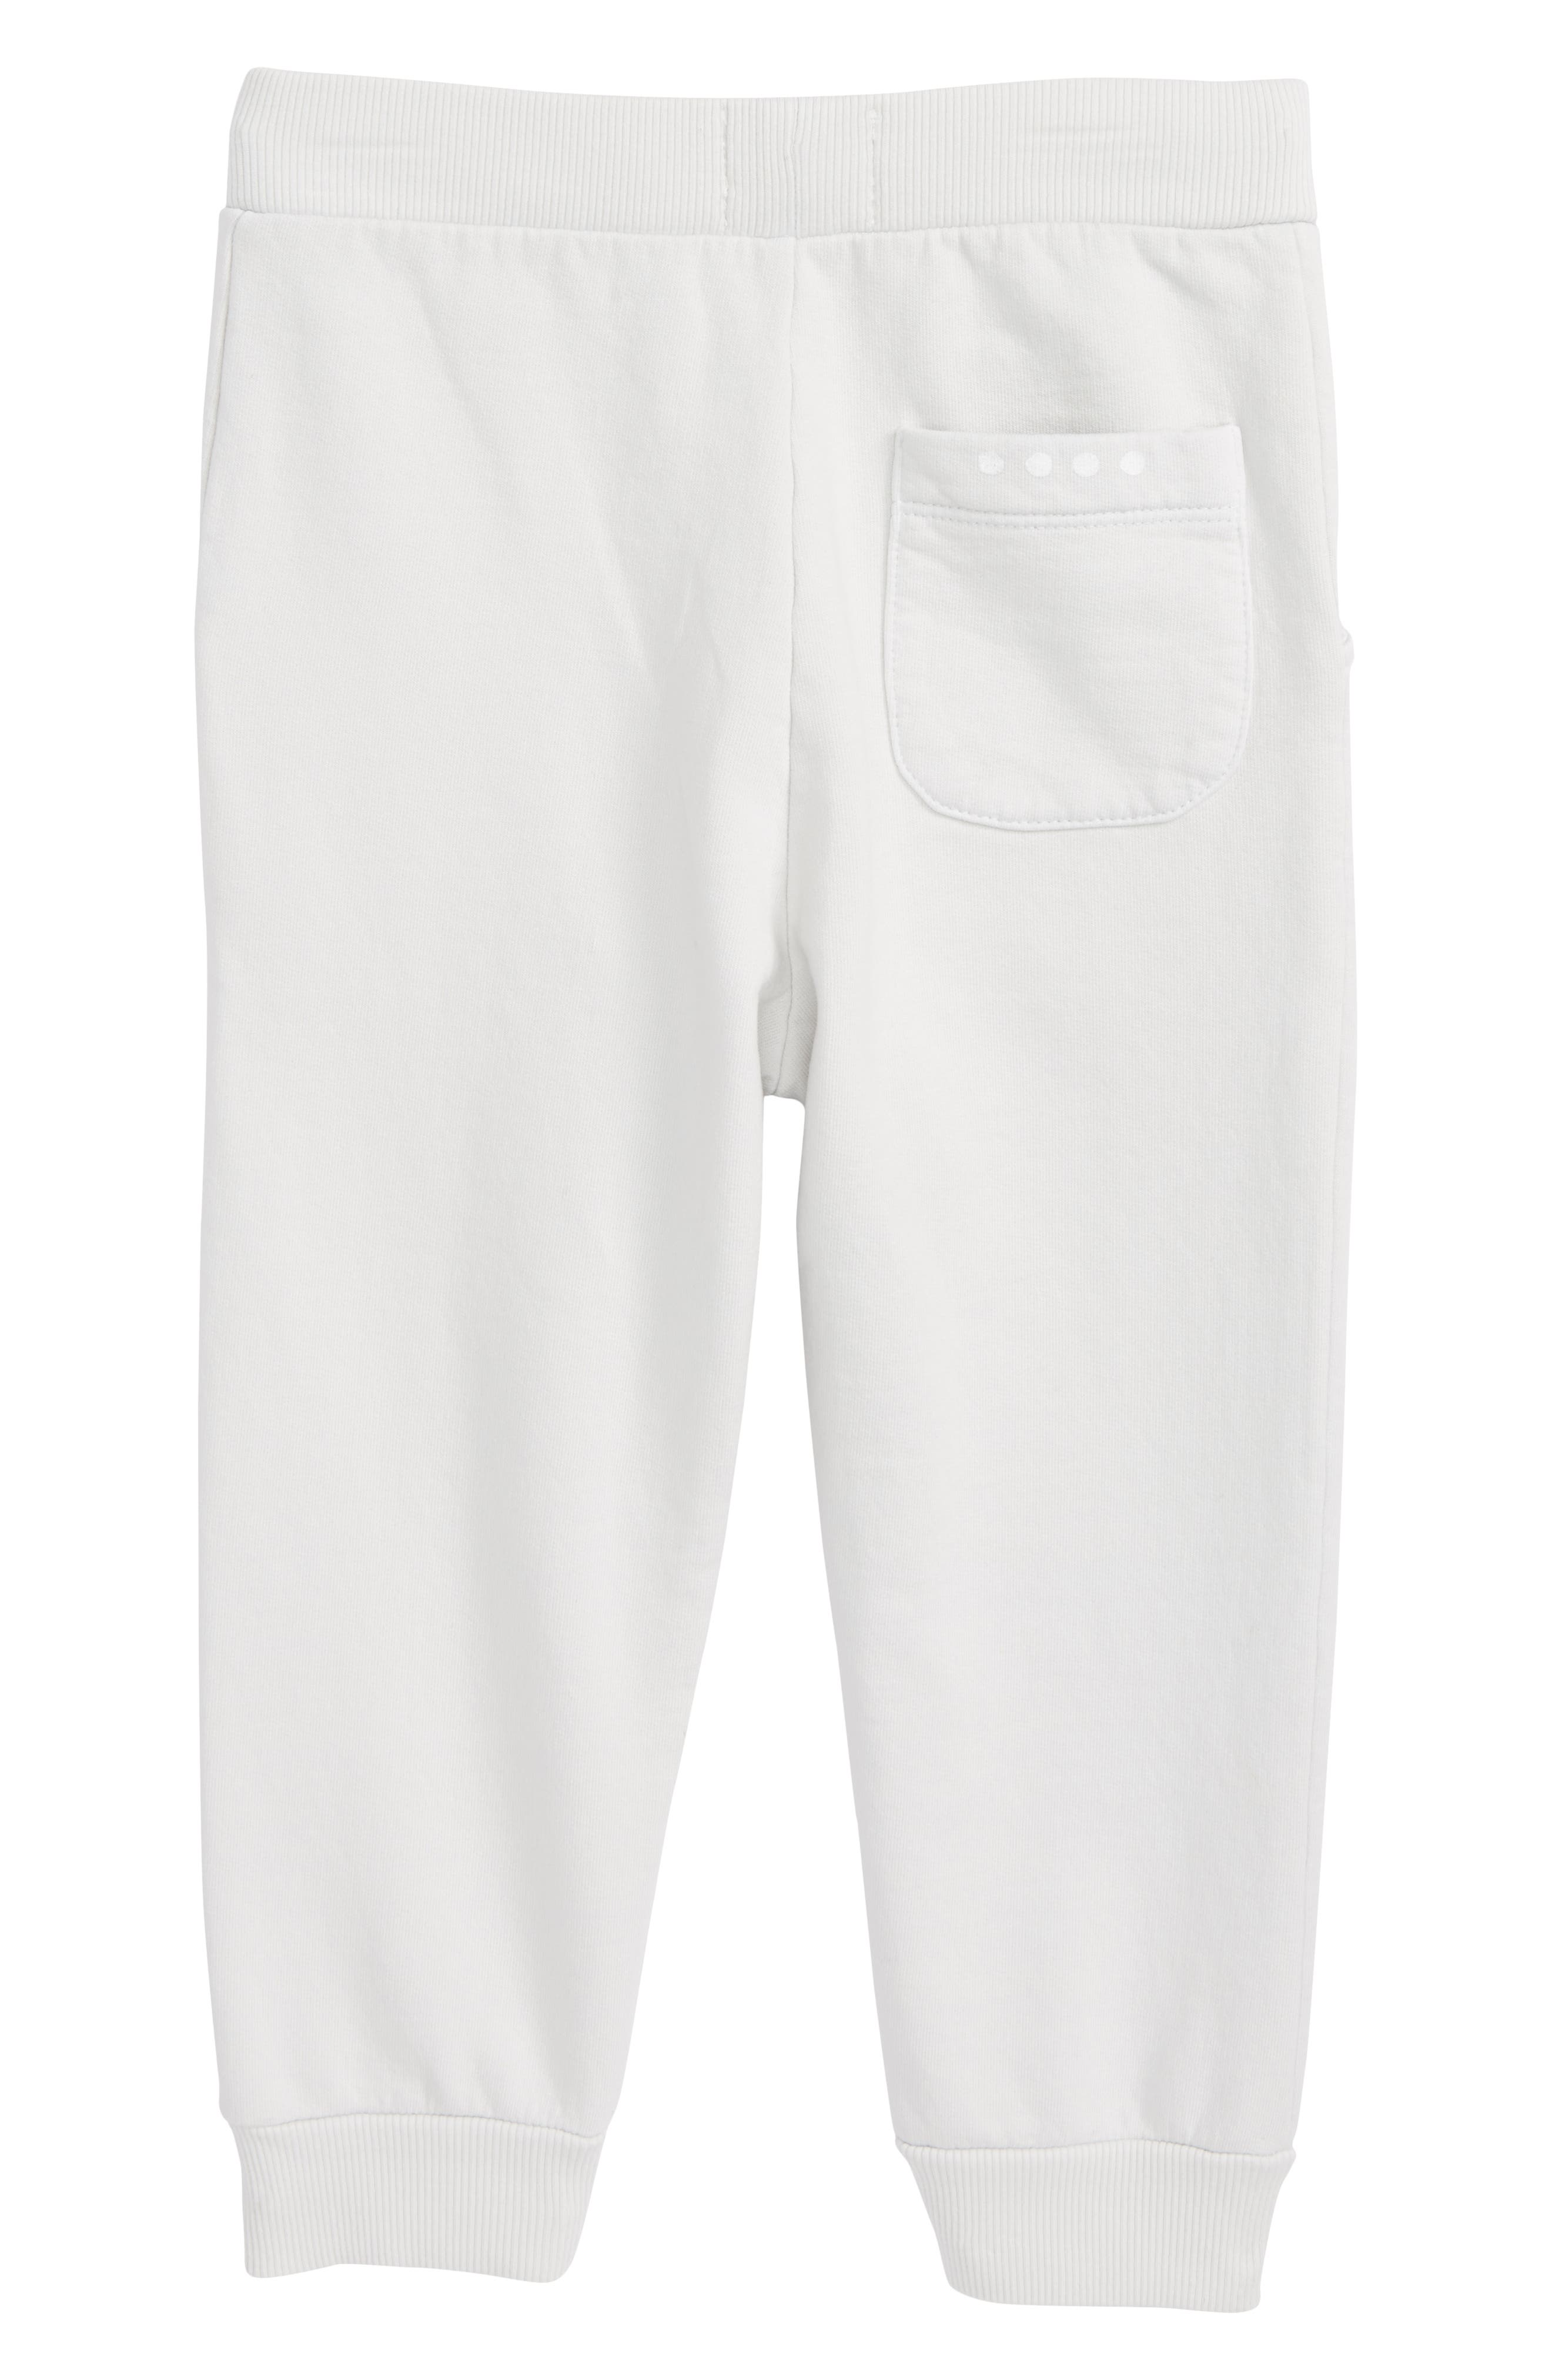 Ryan Jogger Pants,                             Alternate thumbnail 2, color,                             Pebble